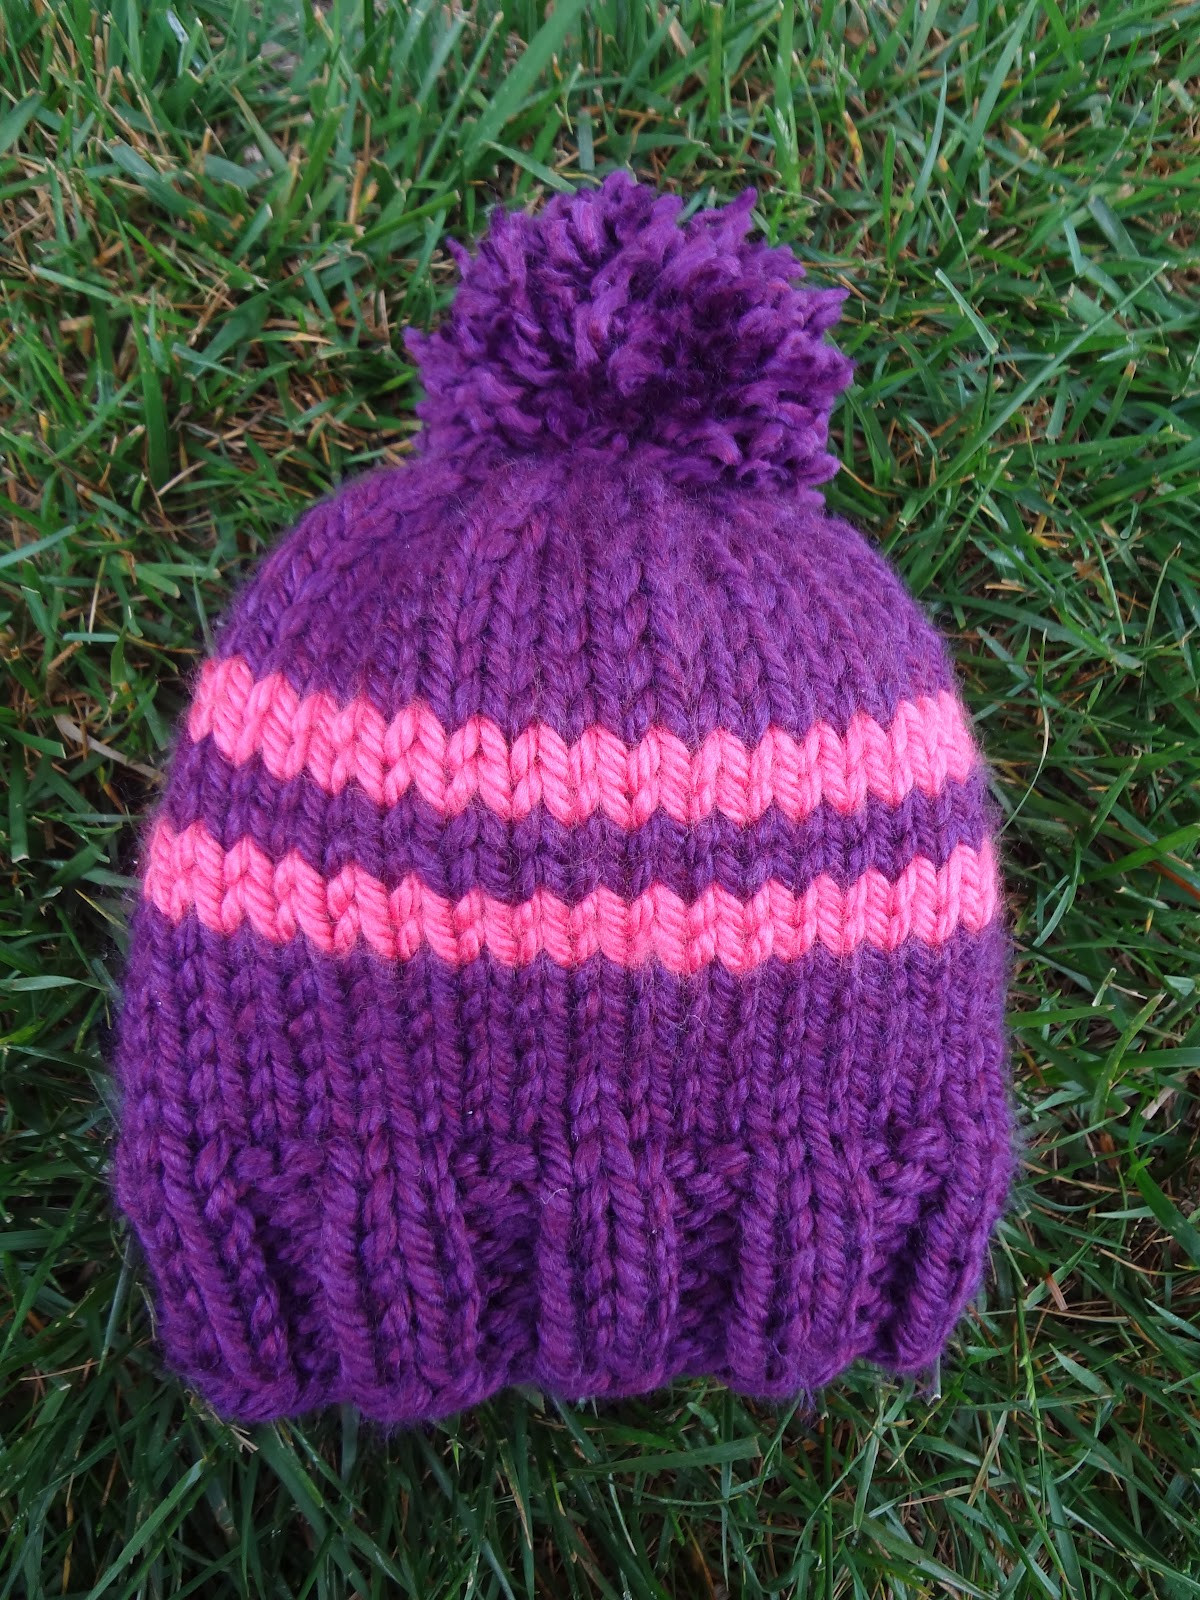 Free Patterns Lovely Fiber Flux Free Knitting Pattern Preschooler Rugby Hat Of Unique 49 Photos Free Patterns